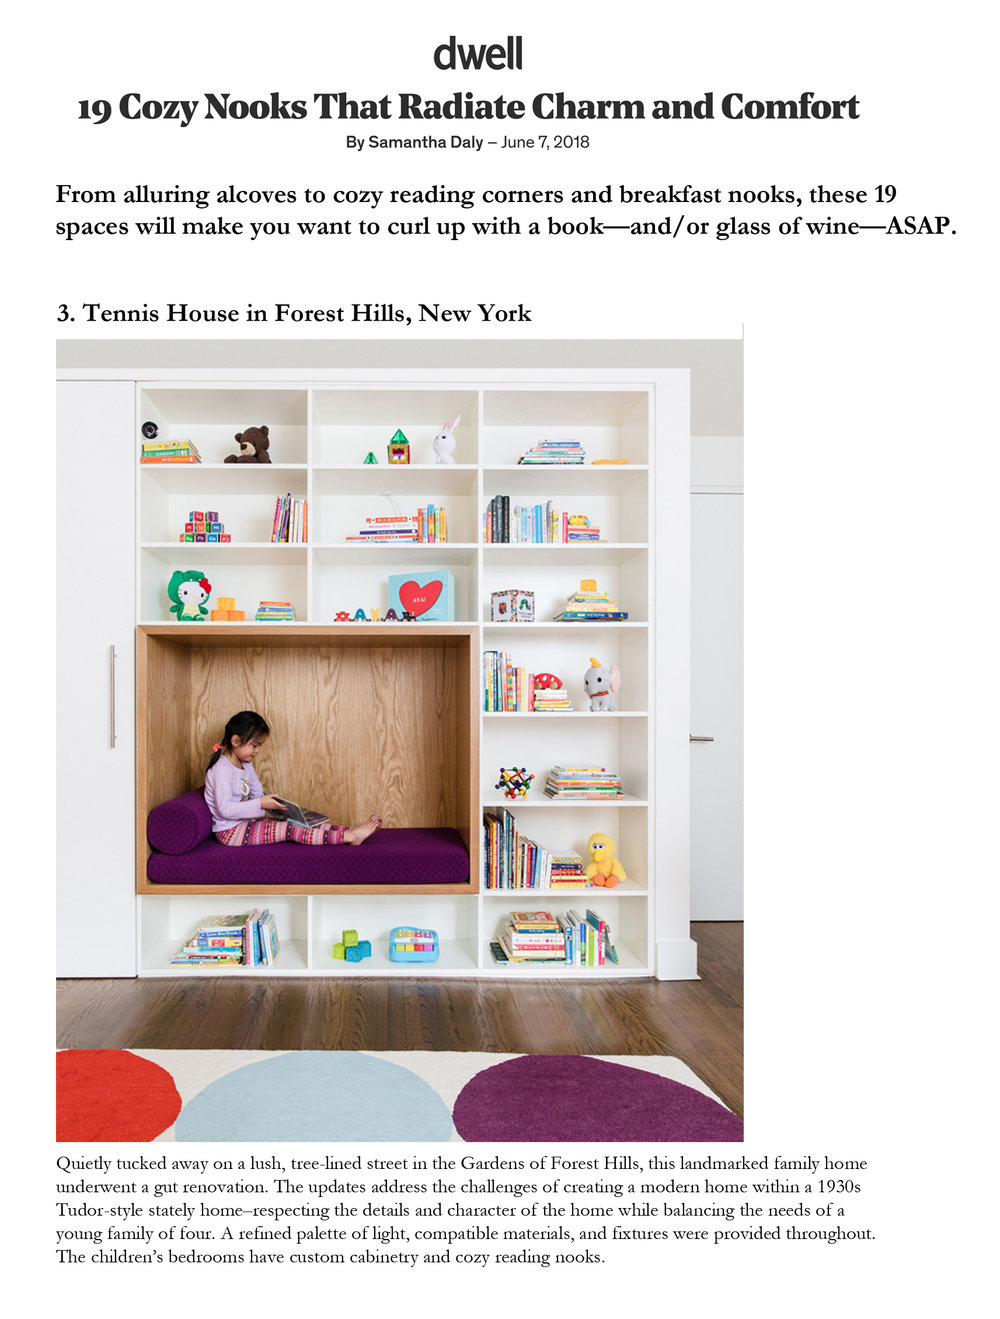 Dwell   June 2018  19 Cozy Nooks that radiate charm and comfort -    From alluring alcoves to cozy reading corners and breakfast nooks, these 19 spaces will make you want to curl up with a book - and/or glass of wine -- ASAP!